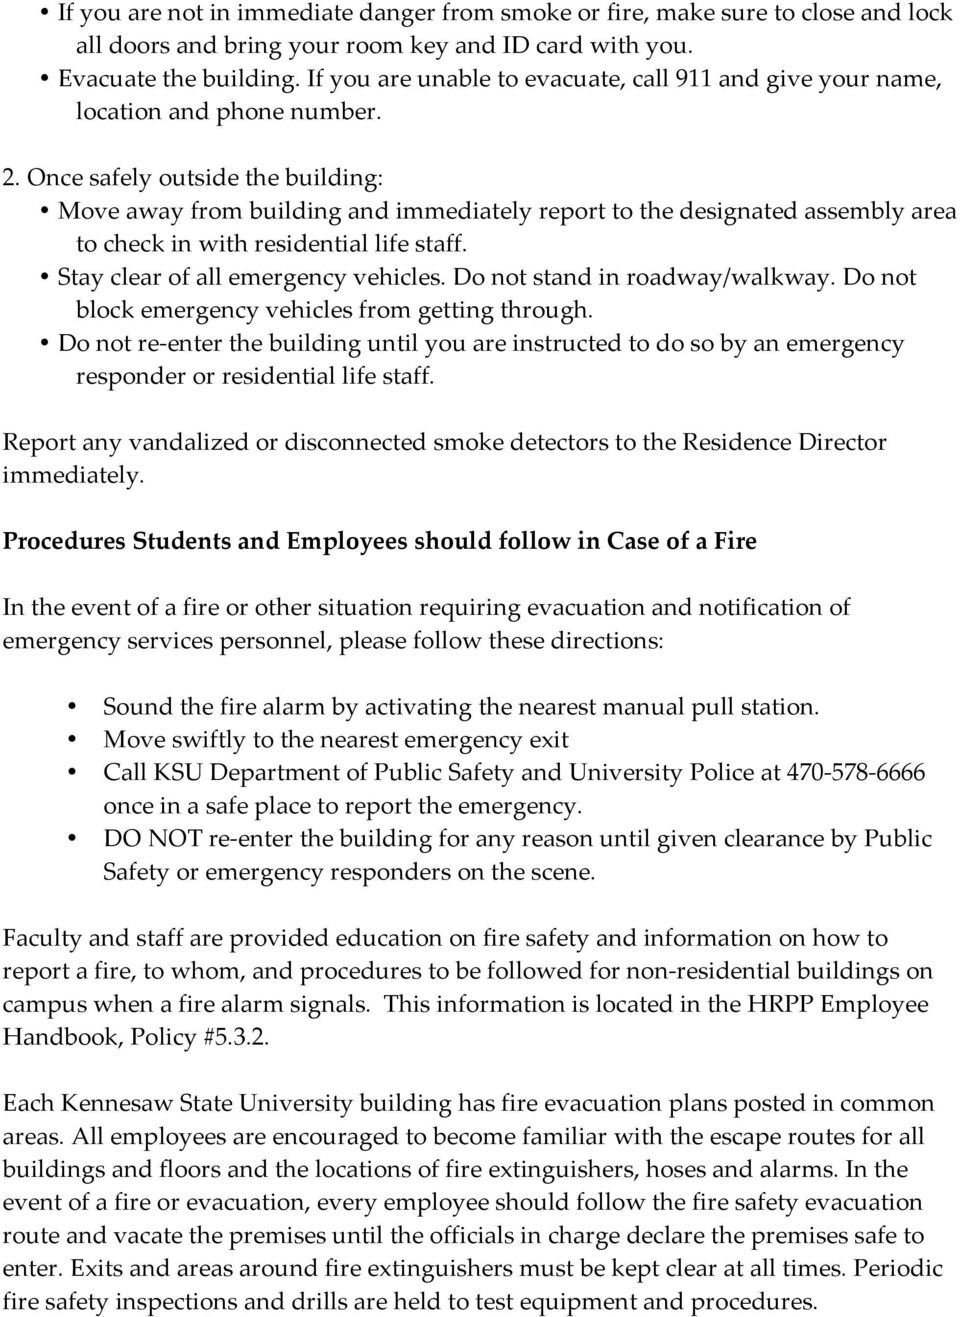 Once safely outside the building: Move away from building and immediately report to the designated assembly area to check in with residential life staff. Stay clear of all emergency vehicles.